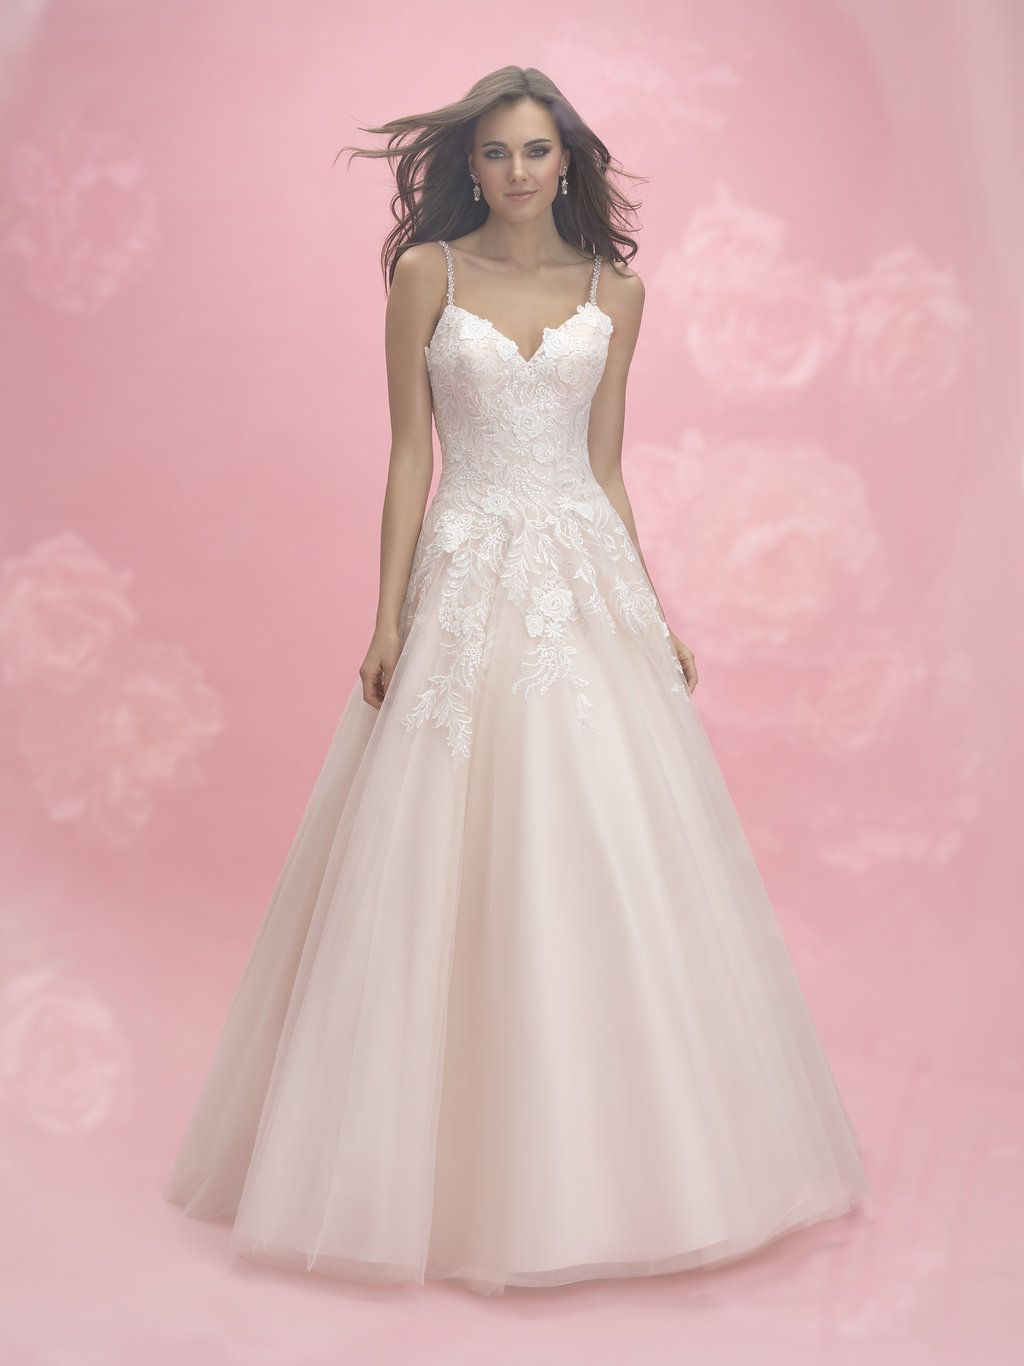 Allure Romance Style 3053, A stunnig A-Line gown with soft lace ...